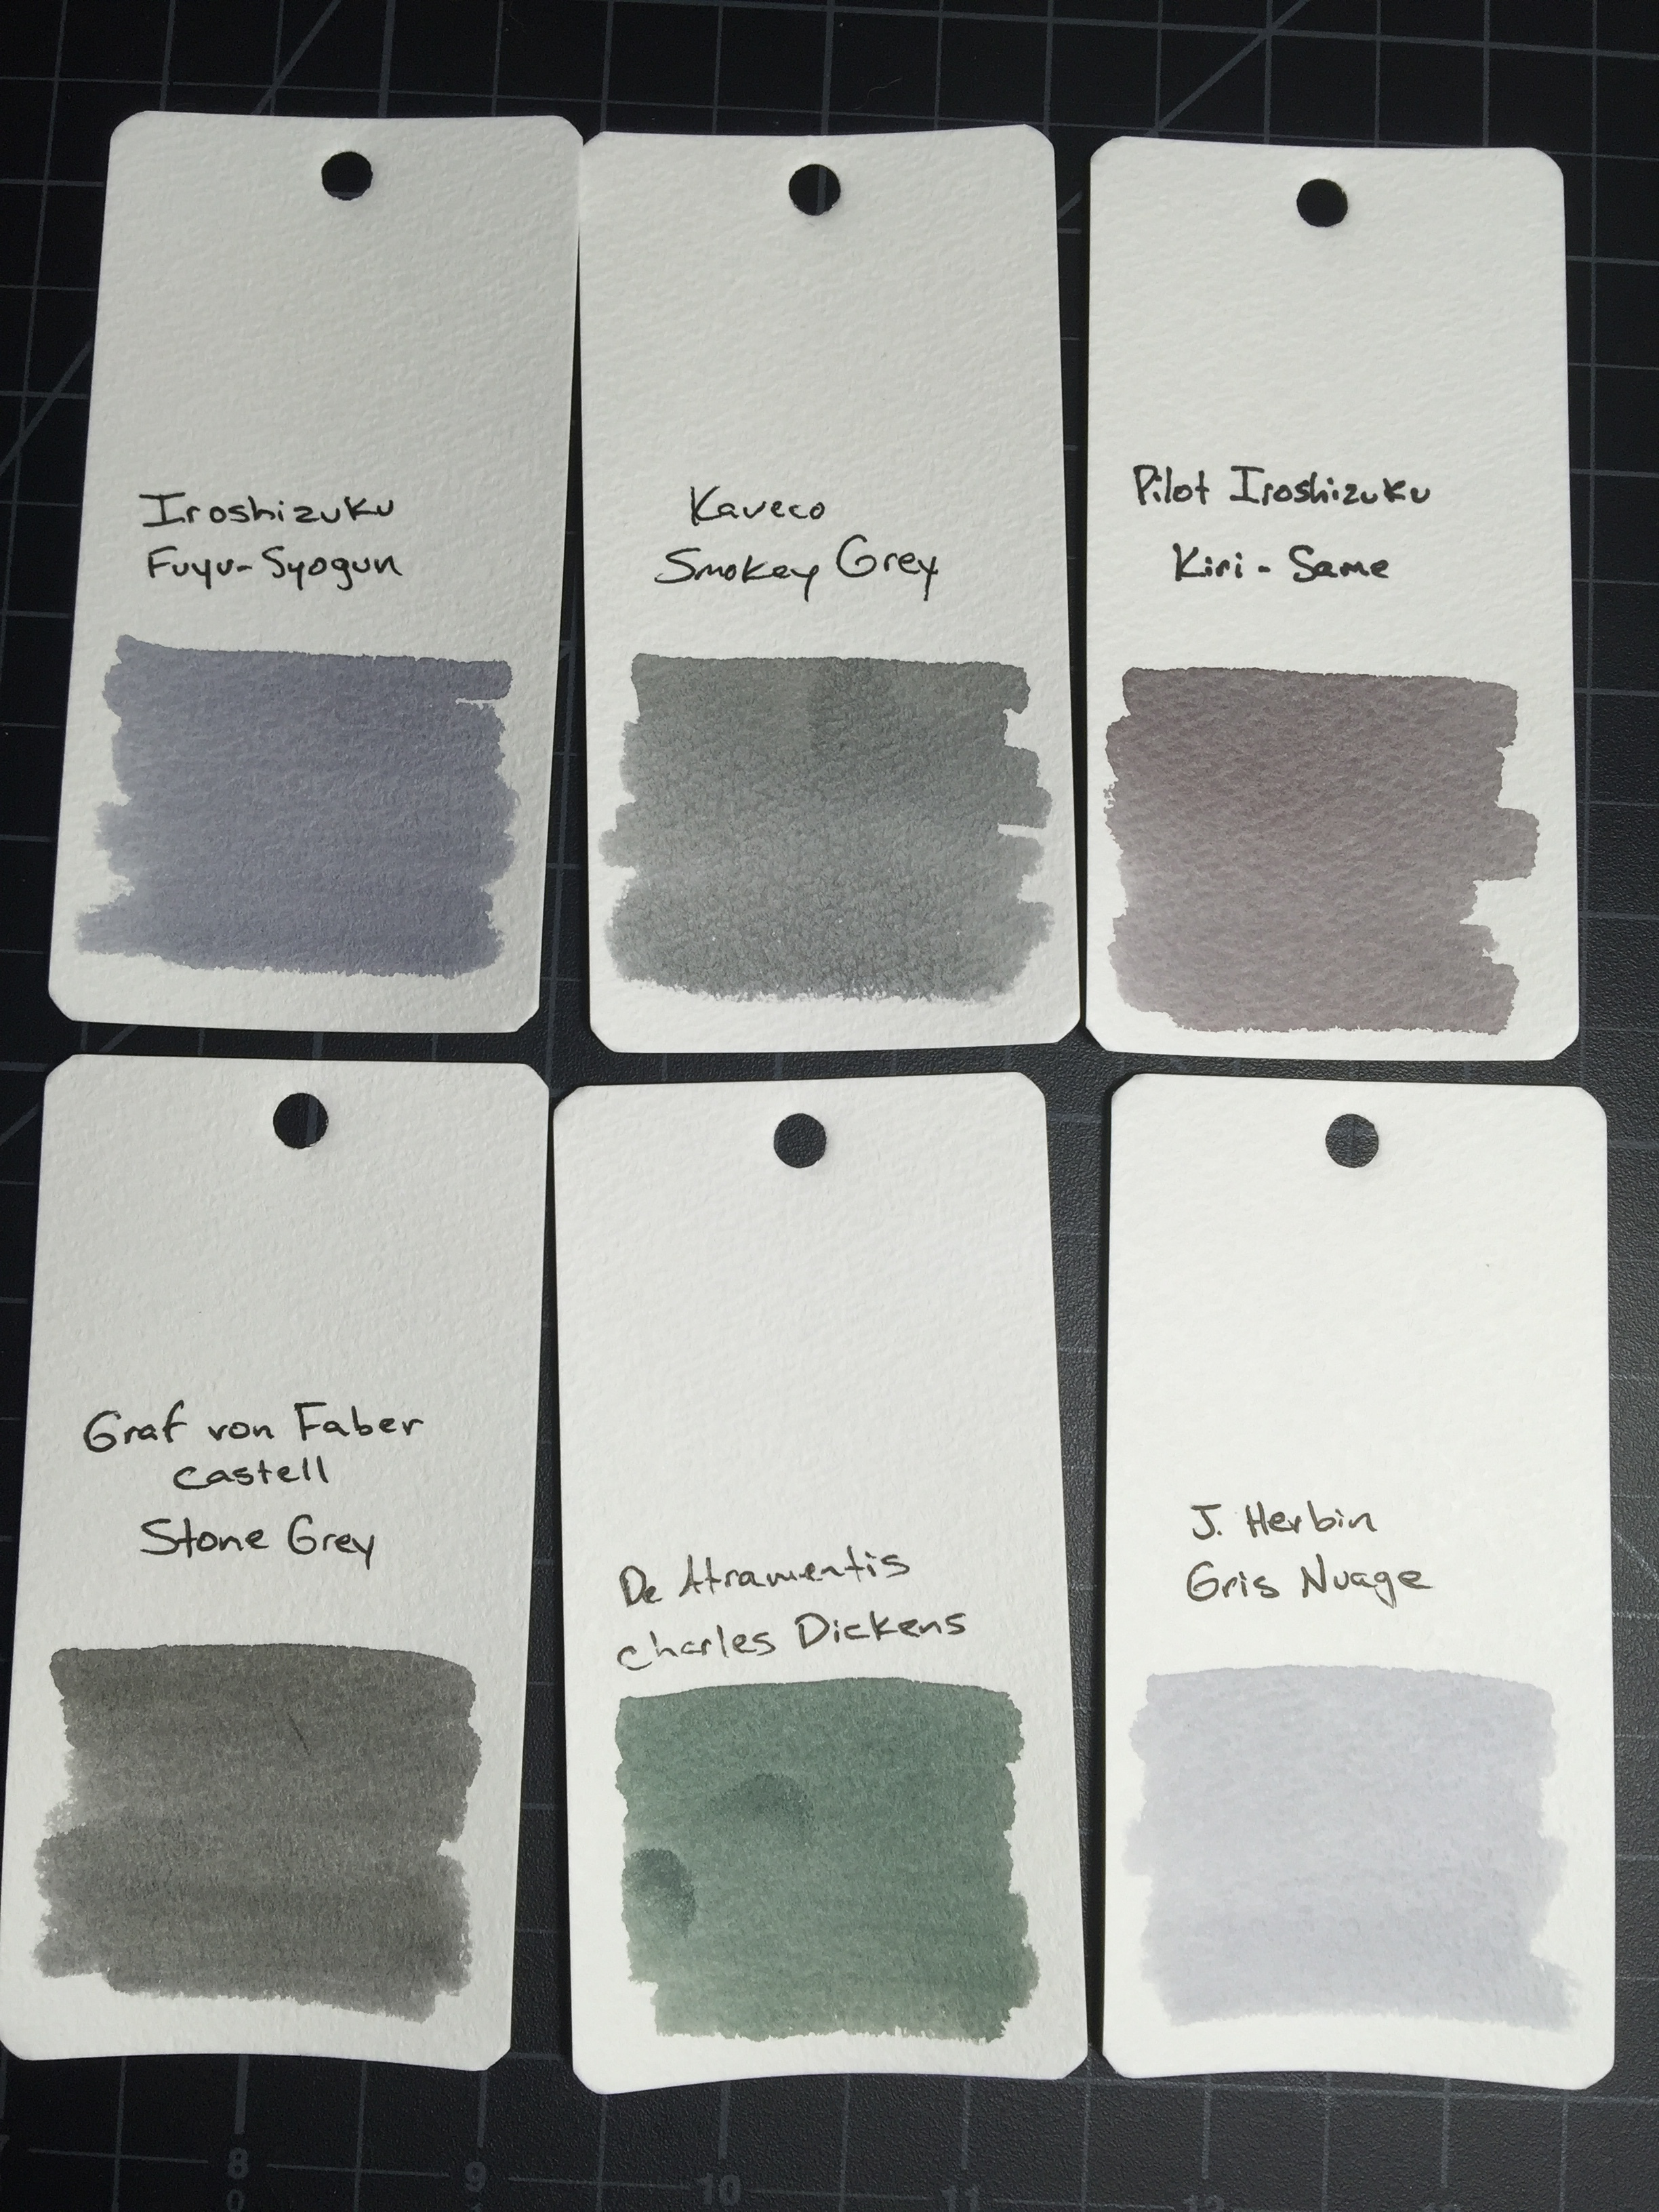 smokey-grey-comparisons